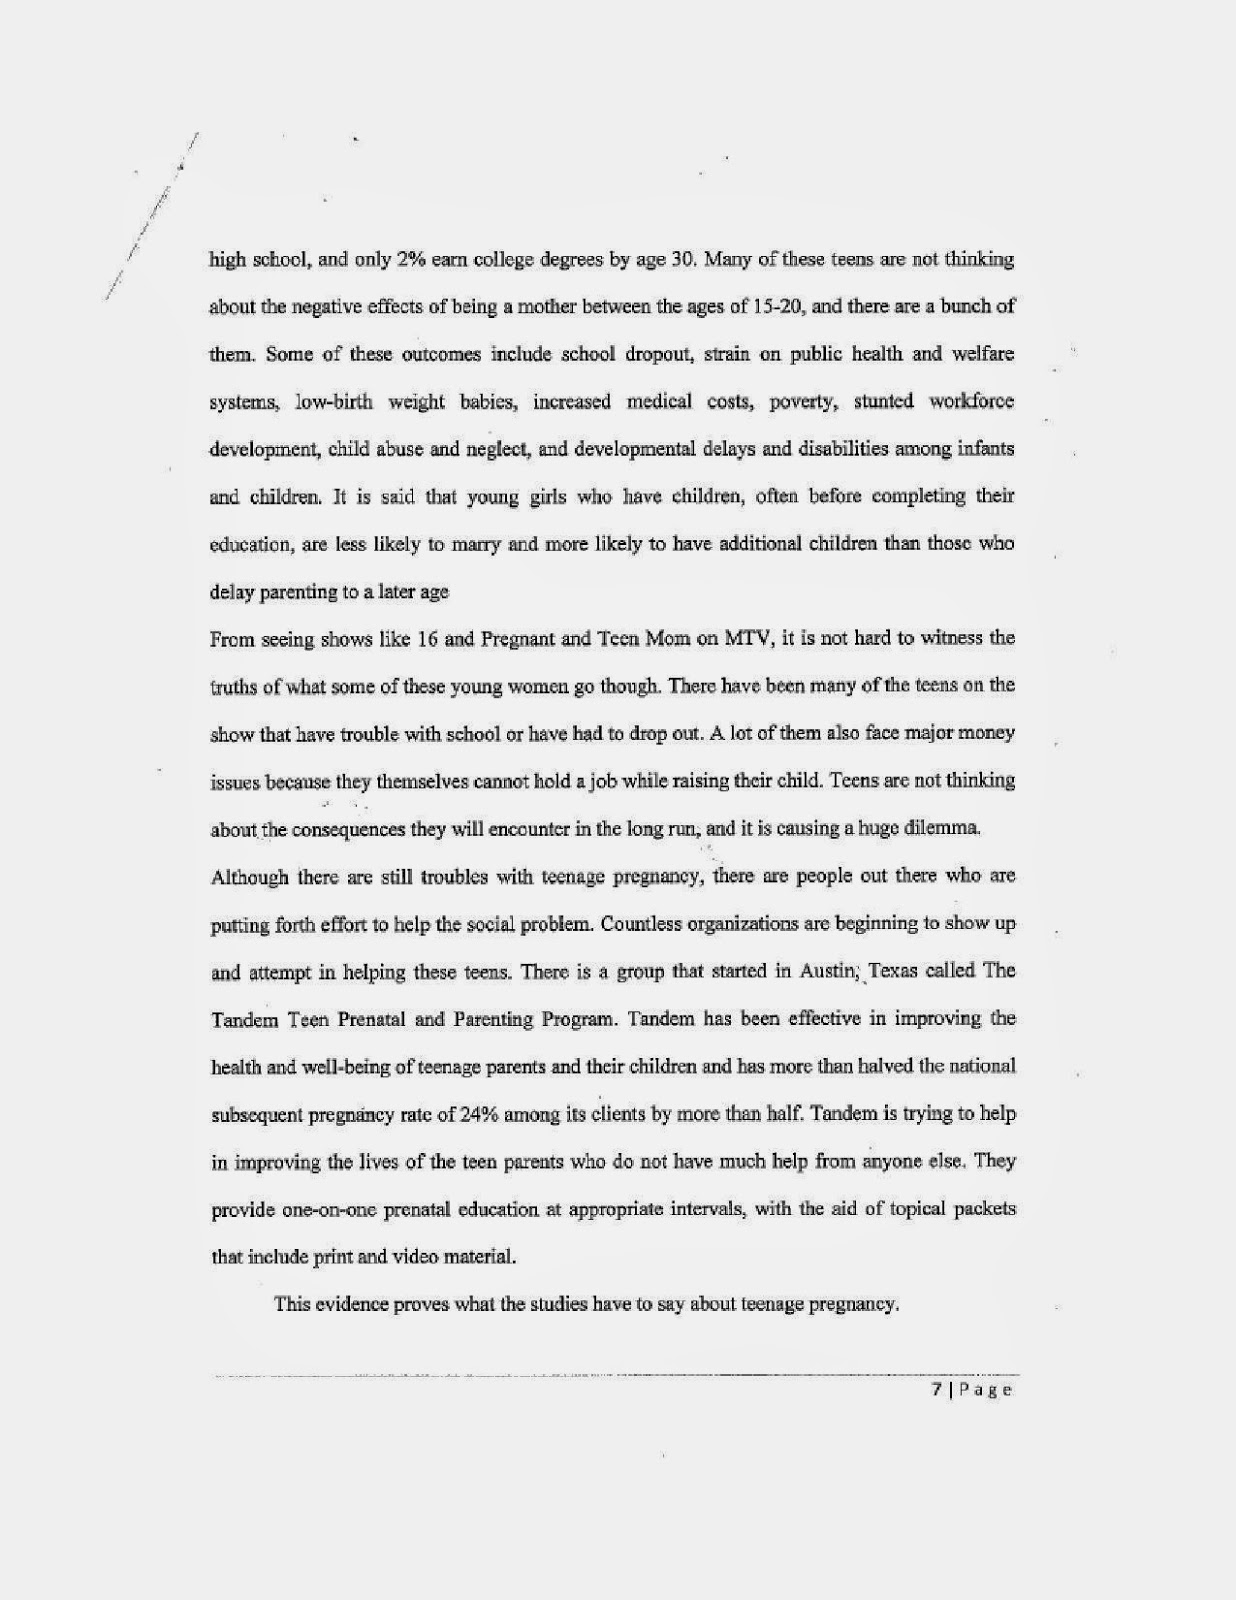 witness essay attorney qualifications resume persuasive essay on  persuasive essay on teenage pregnancy search results for narrative essay on pregnancy search results for narrative